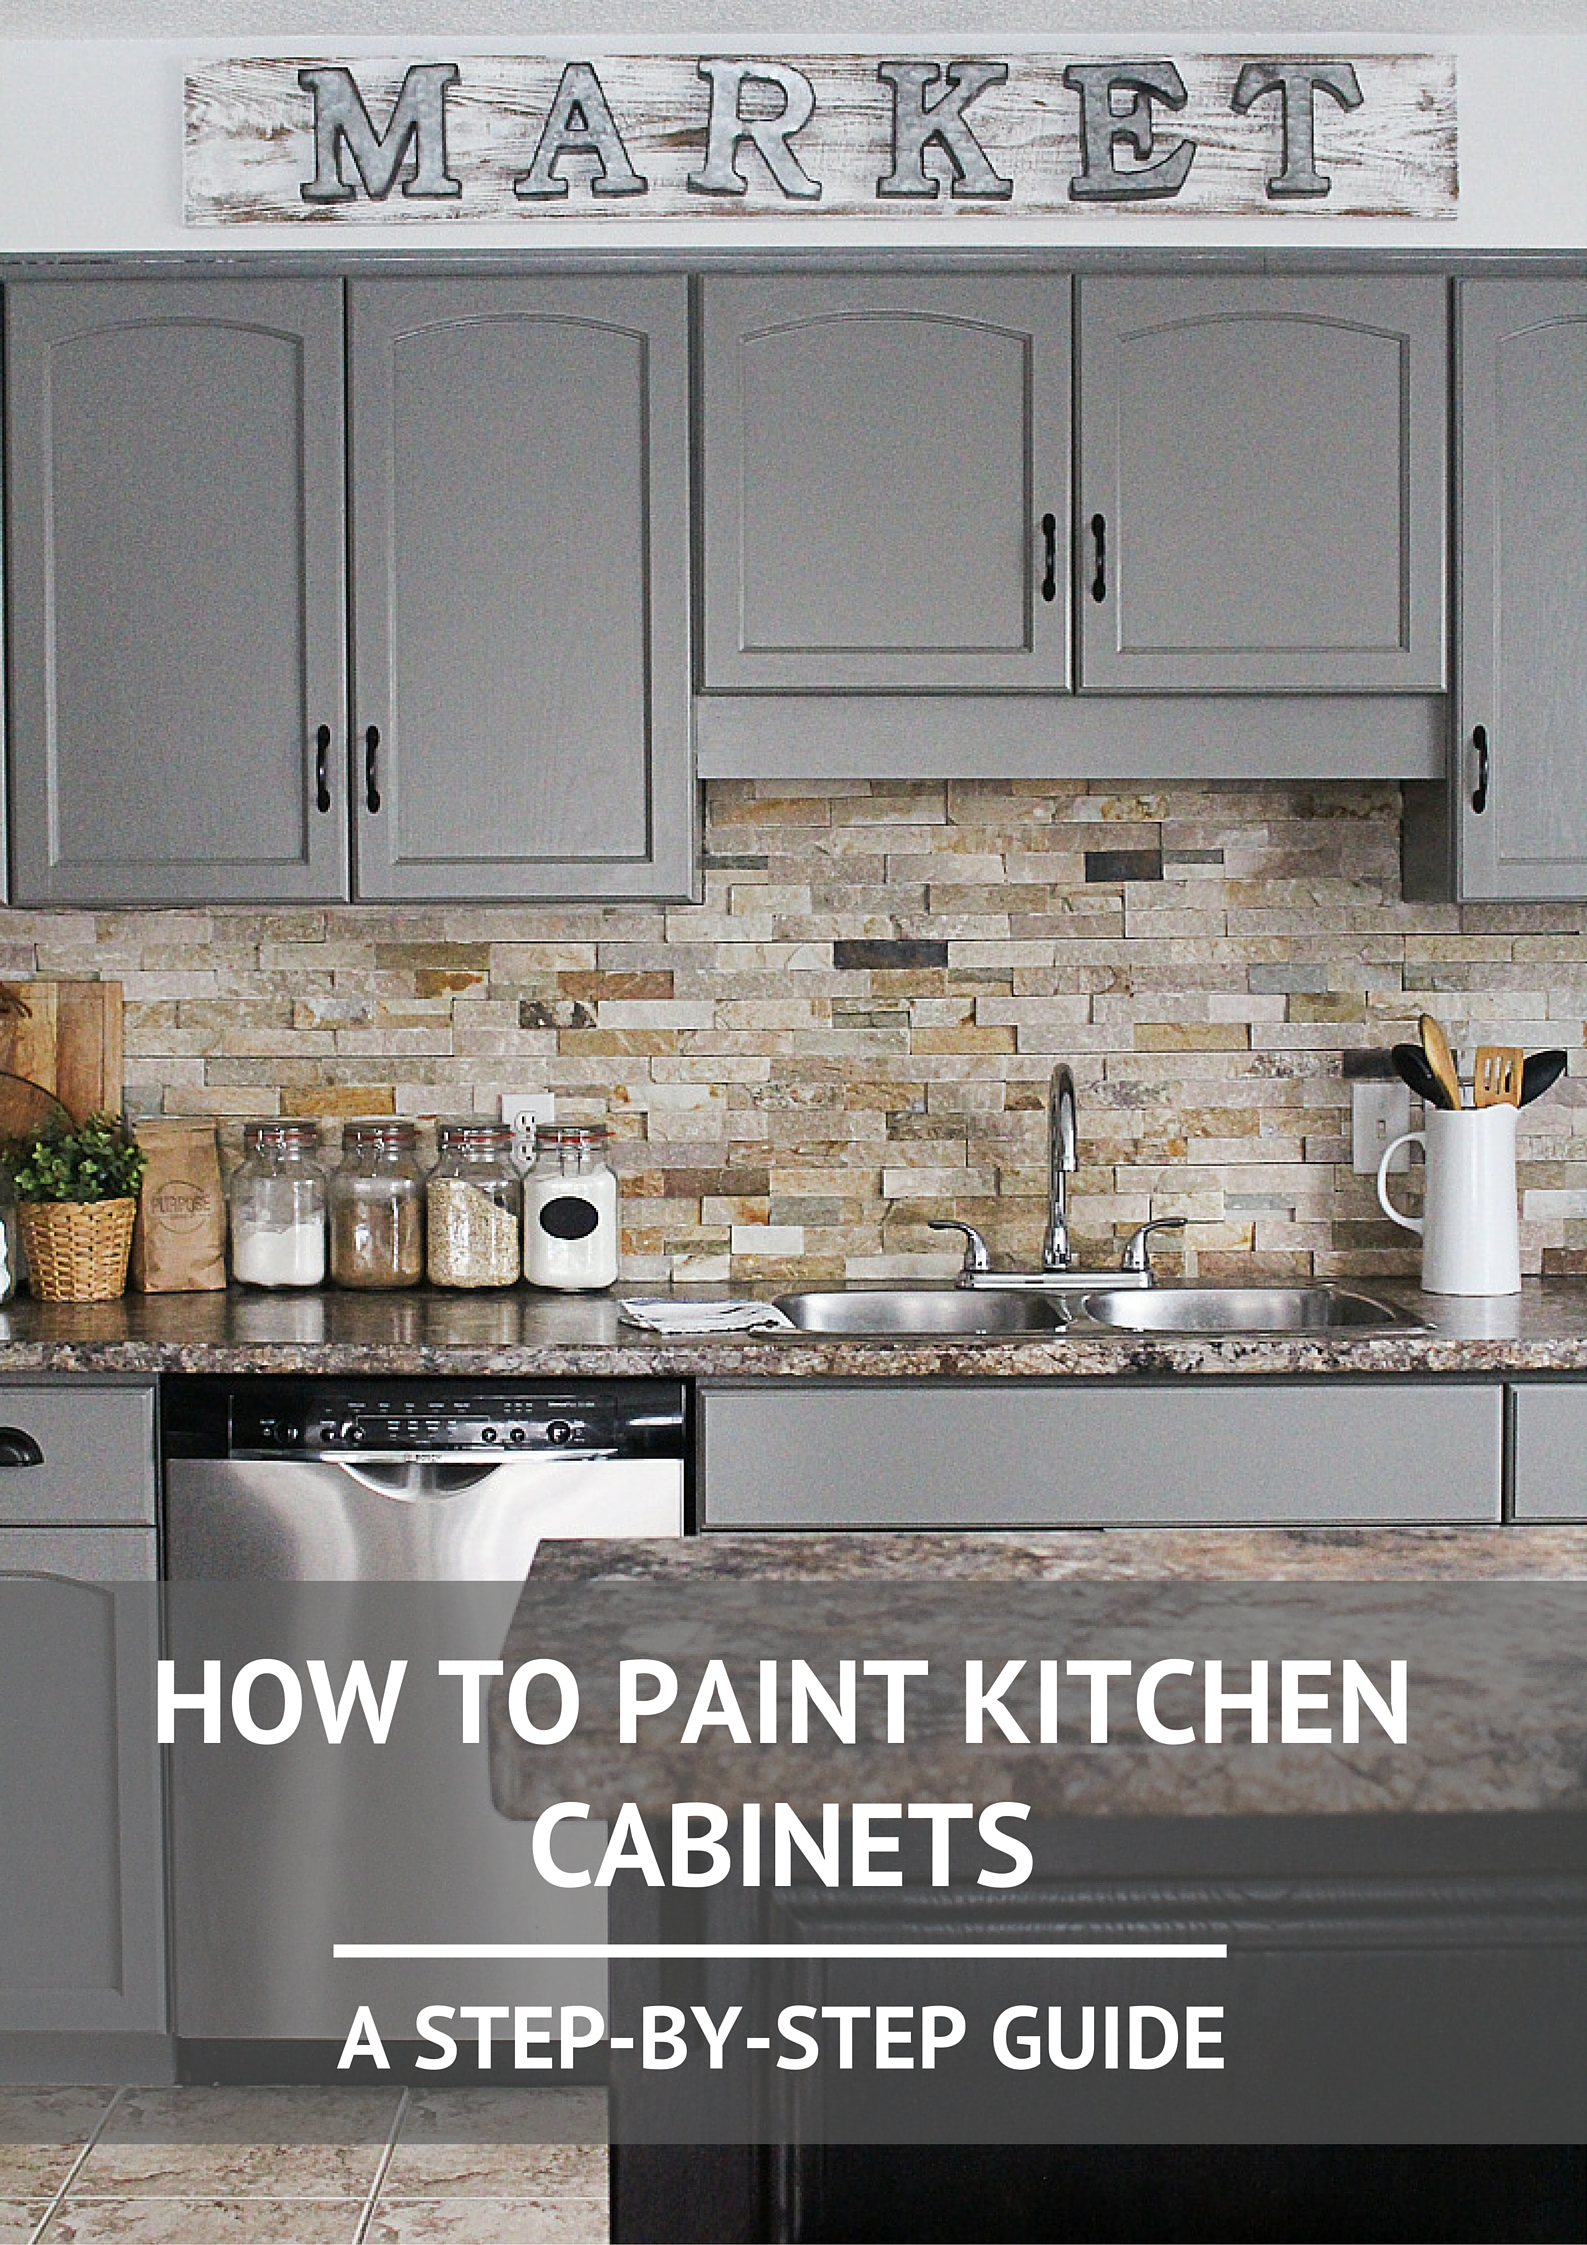 How to Paint Kitchen Cabinets A Step by Step Guide 2